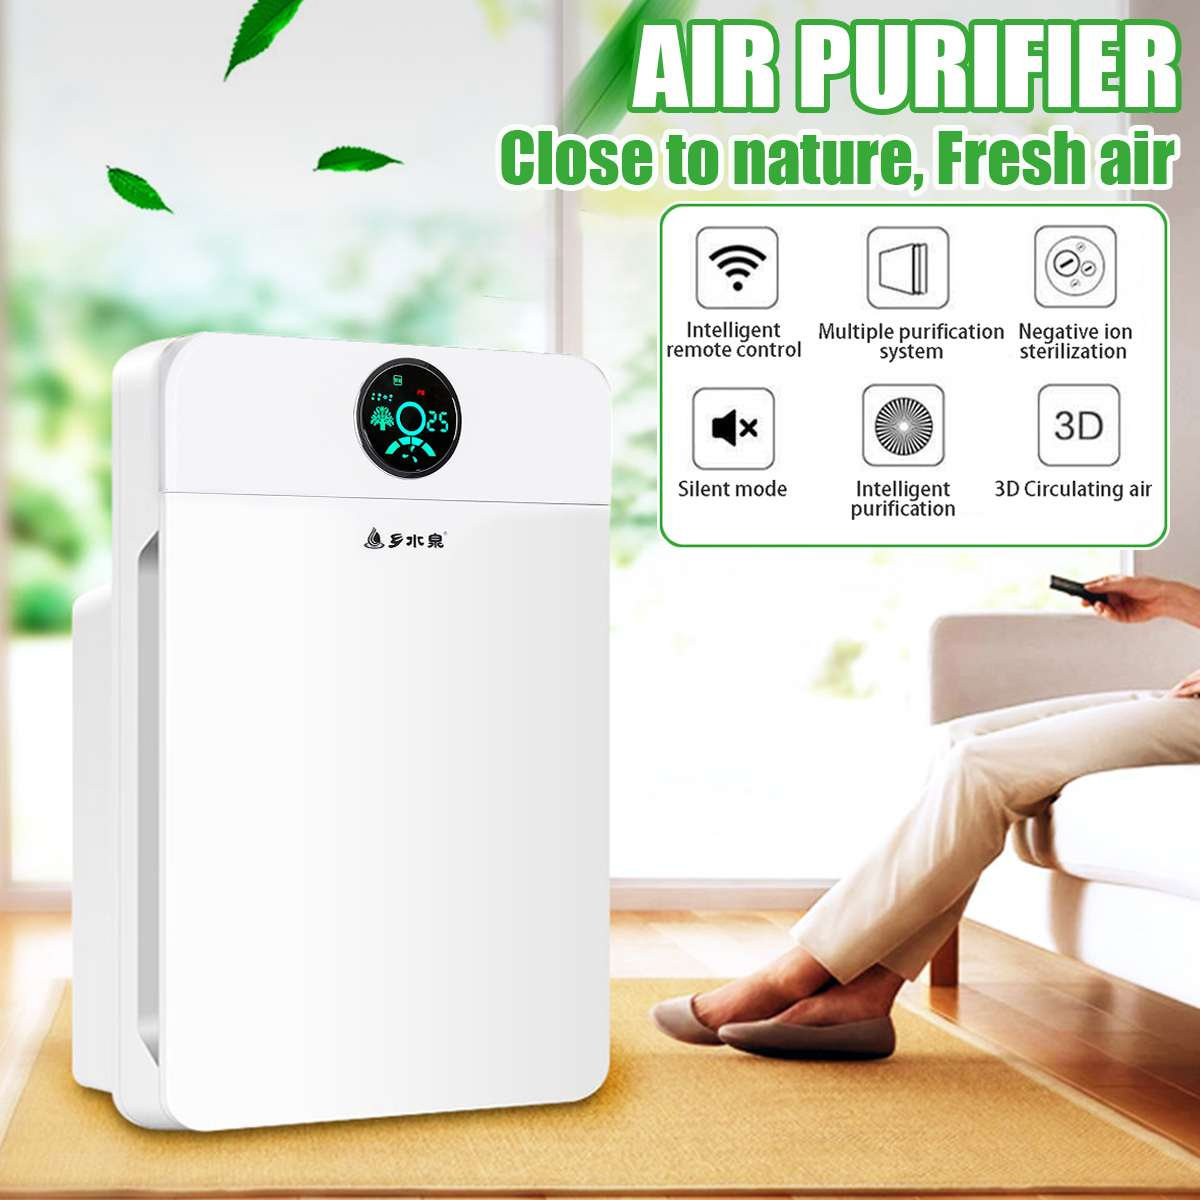 35W White Air Cleaner Formaldehyde Purifier LCD Display Remote Control Timer Low Noise 220V Home Dust HEPA Filter Cleaner35W White Air Cleaner Formaldehyde Purifier LCD Display Remote Control Timer Low Noise 220V Home Dust HEPA Filter Cleaner